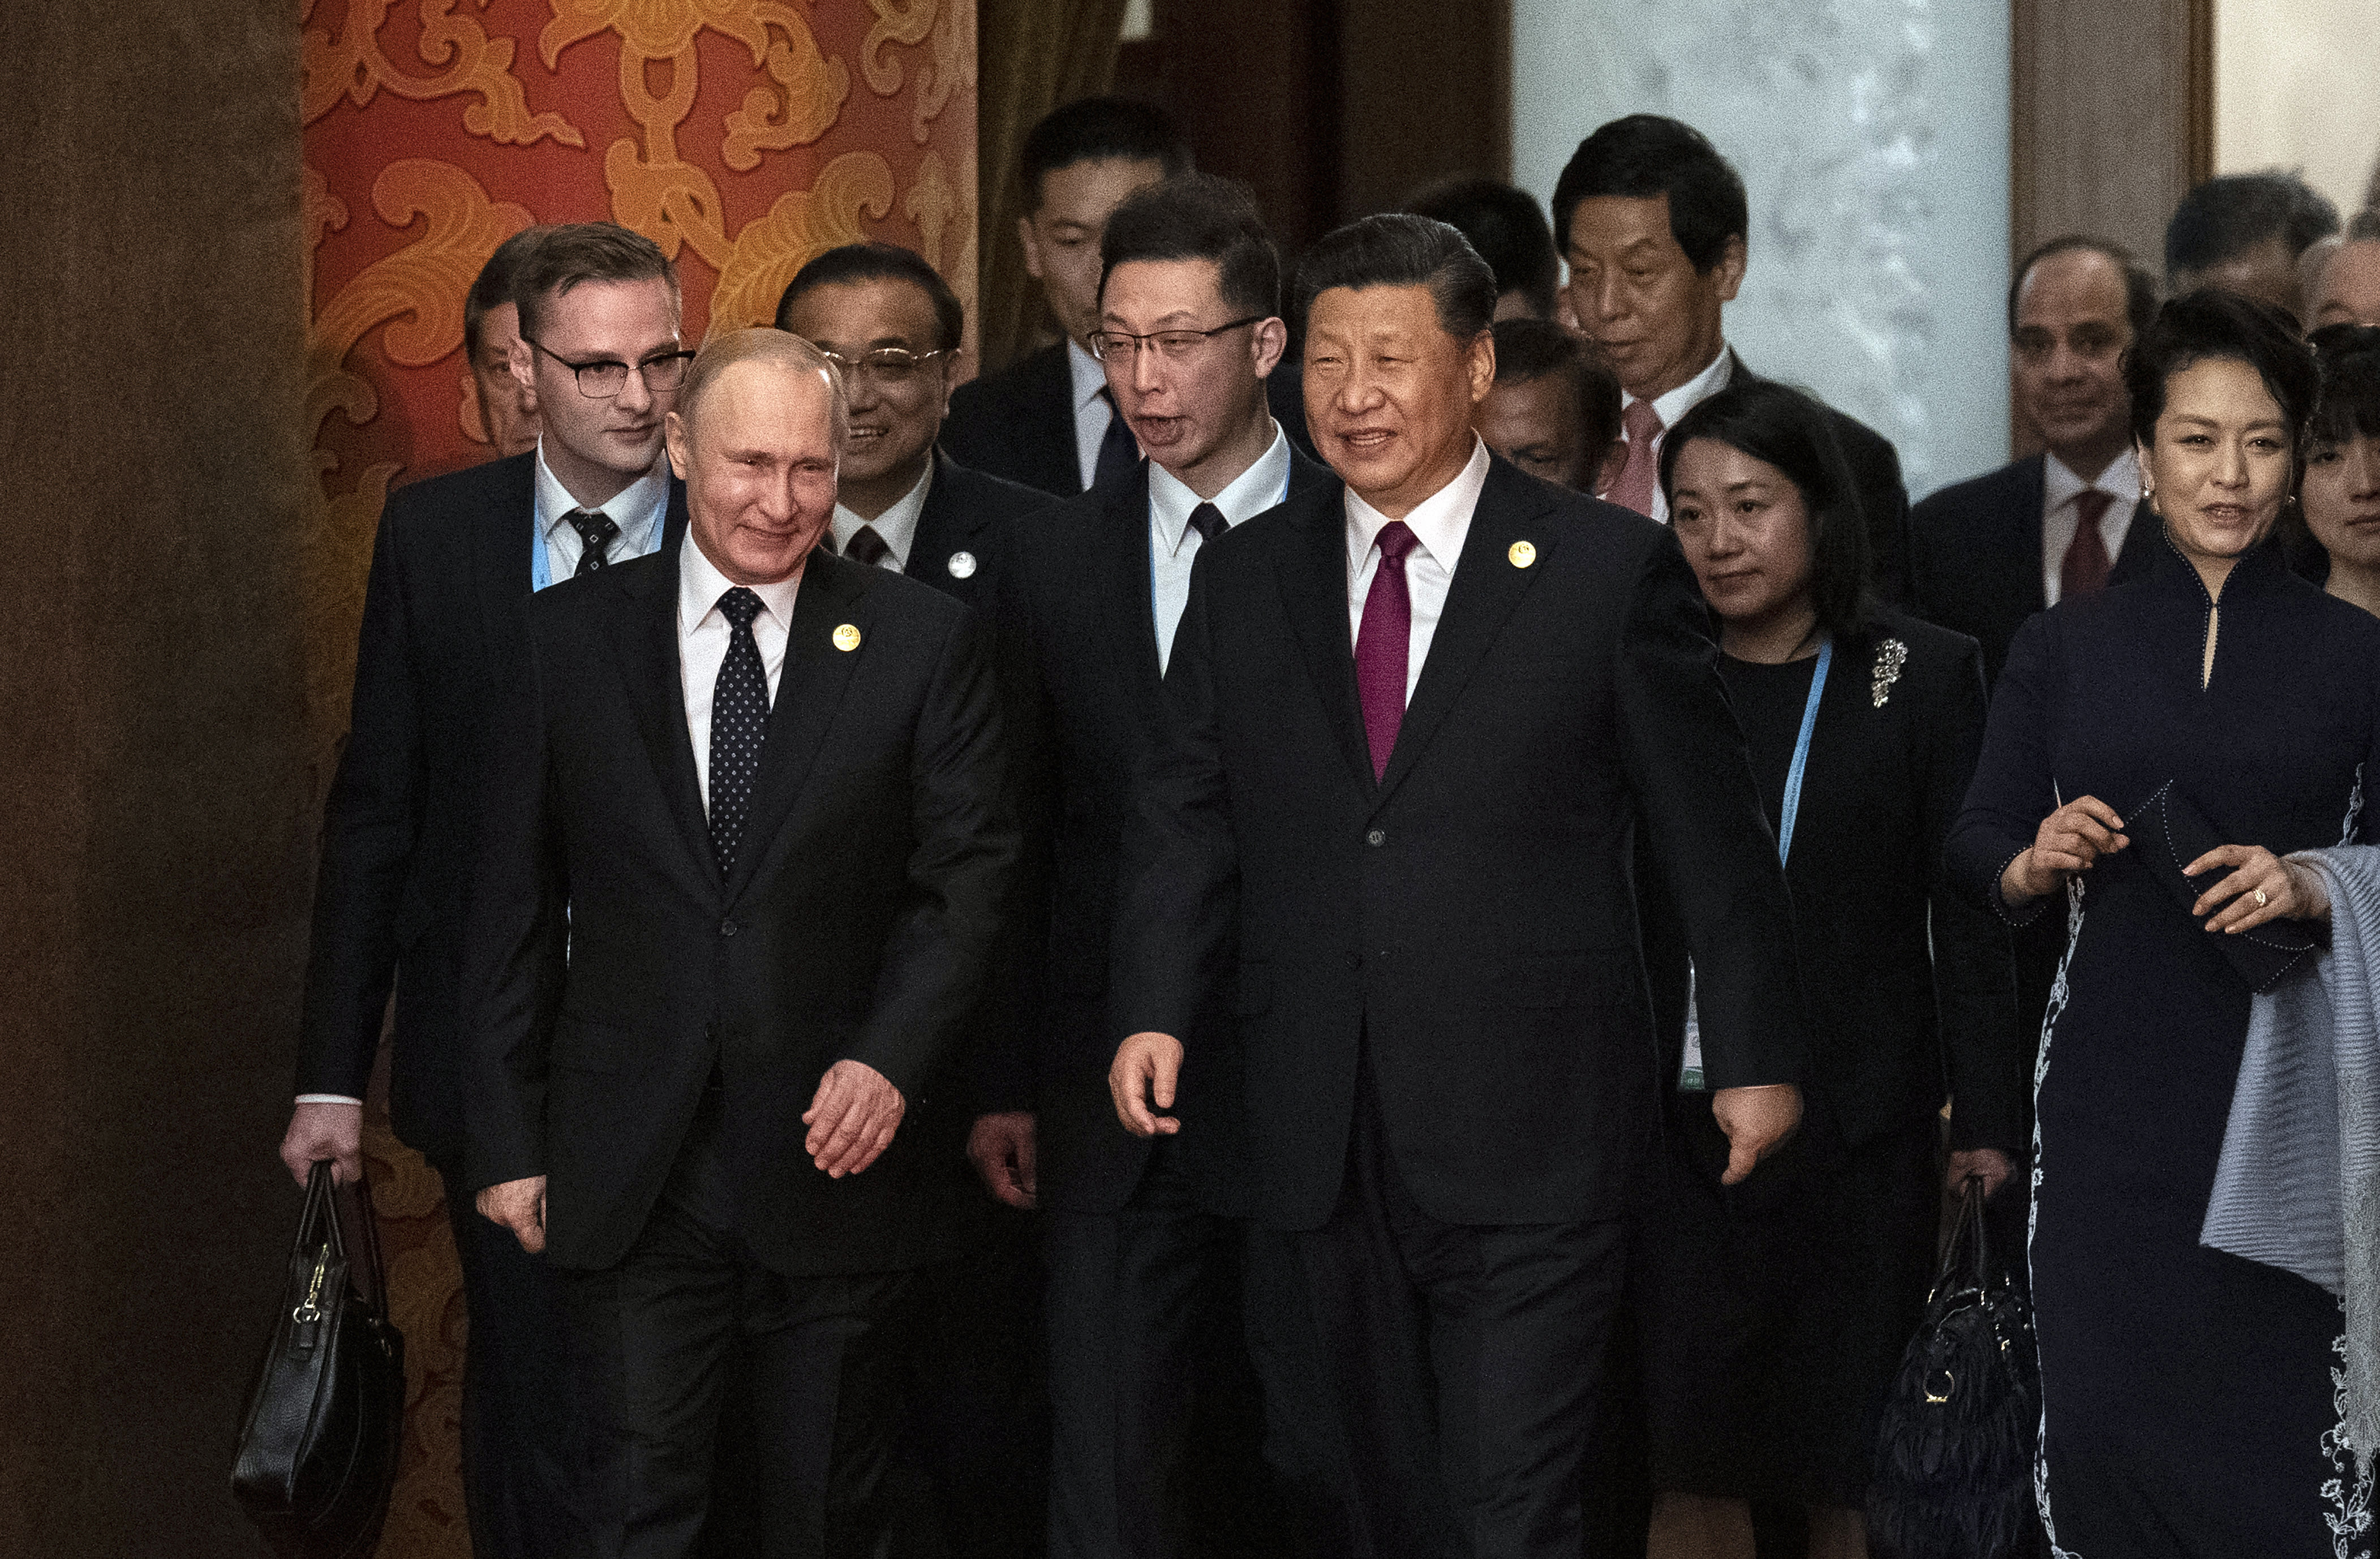 FILE - In this April 26, 2019, file photo, Russian President Vladimir Putin, front left, and Chinese Premier Xi Jinping, front center, arrive for the welcome banquet at the Belt and Road Forum at the Great Hall of the People in Beijing. A Russian naval task force has arrived in the northern Chinese port of Qingdao ahead of joint naval exercises that reinforce the growing bond between Beijing and Moscow. (Nicolas Asfouri/Pool Photo via AP, File)